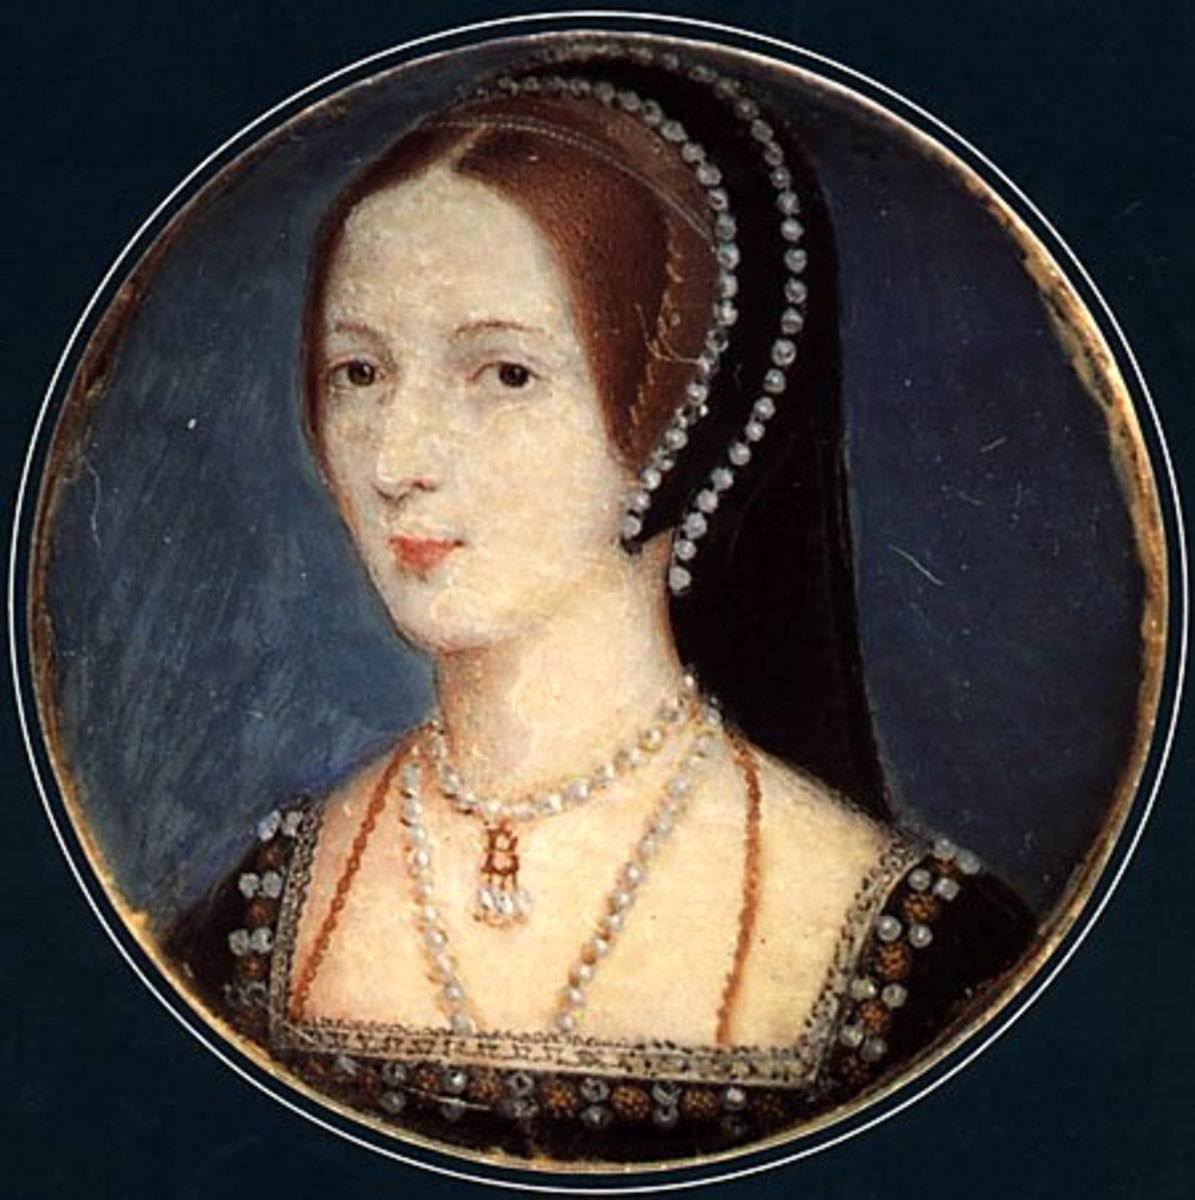 Anne Boleyn in her youth